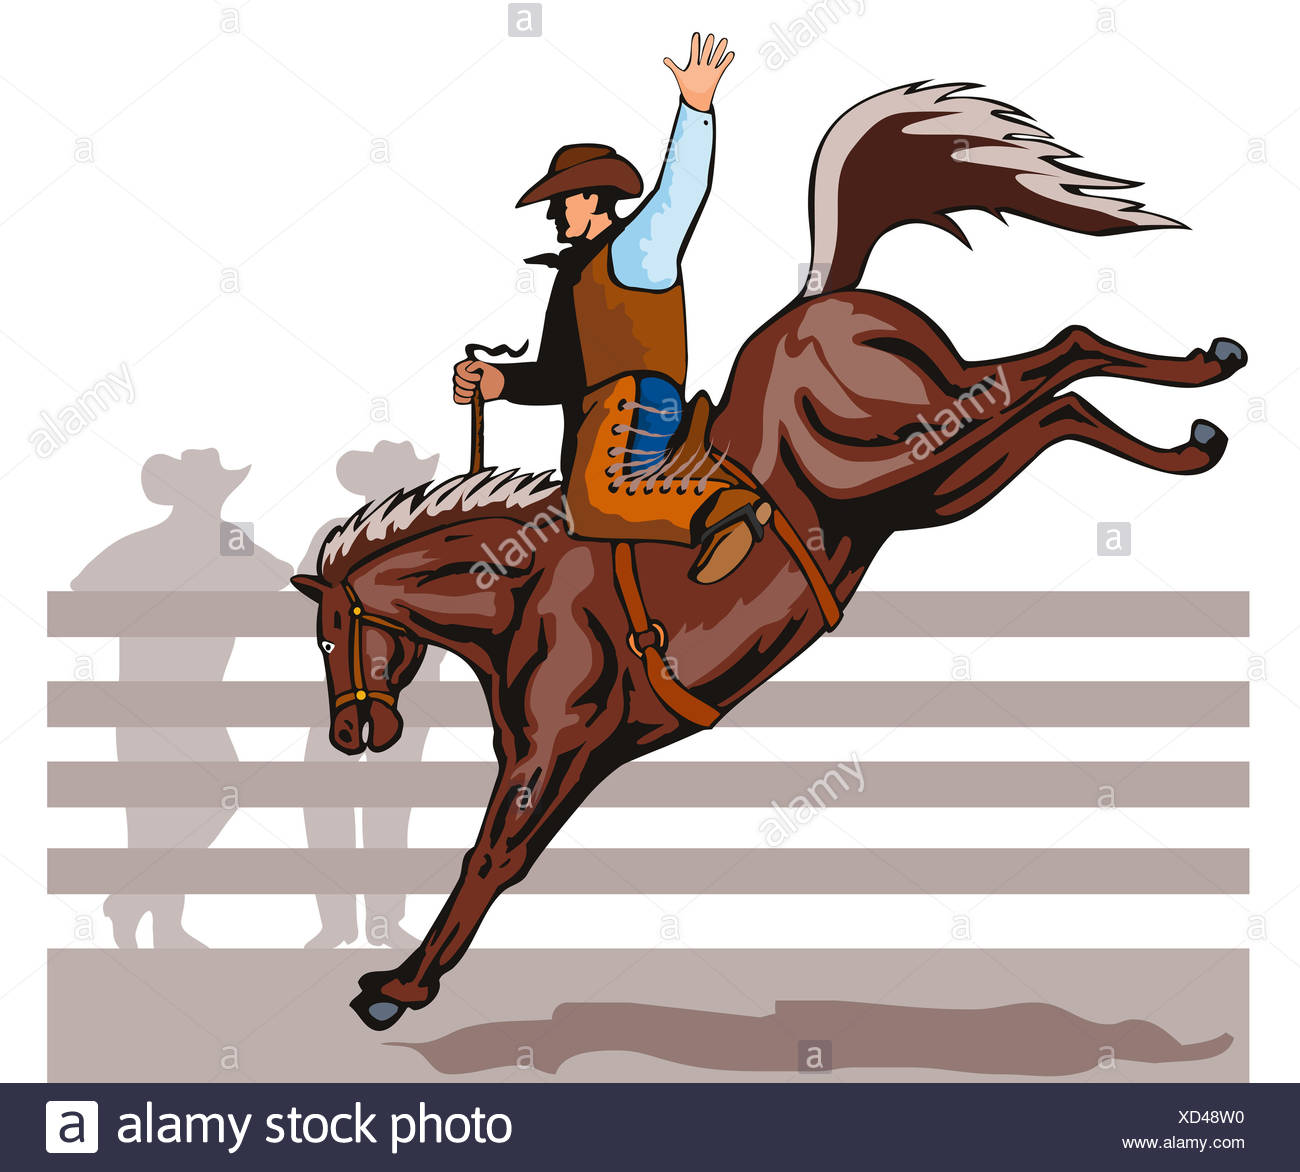 Rodeo cowboy riding bucking bronco horse